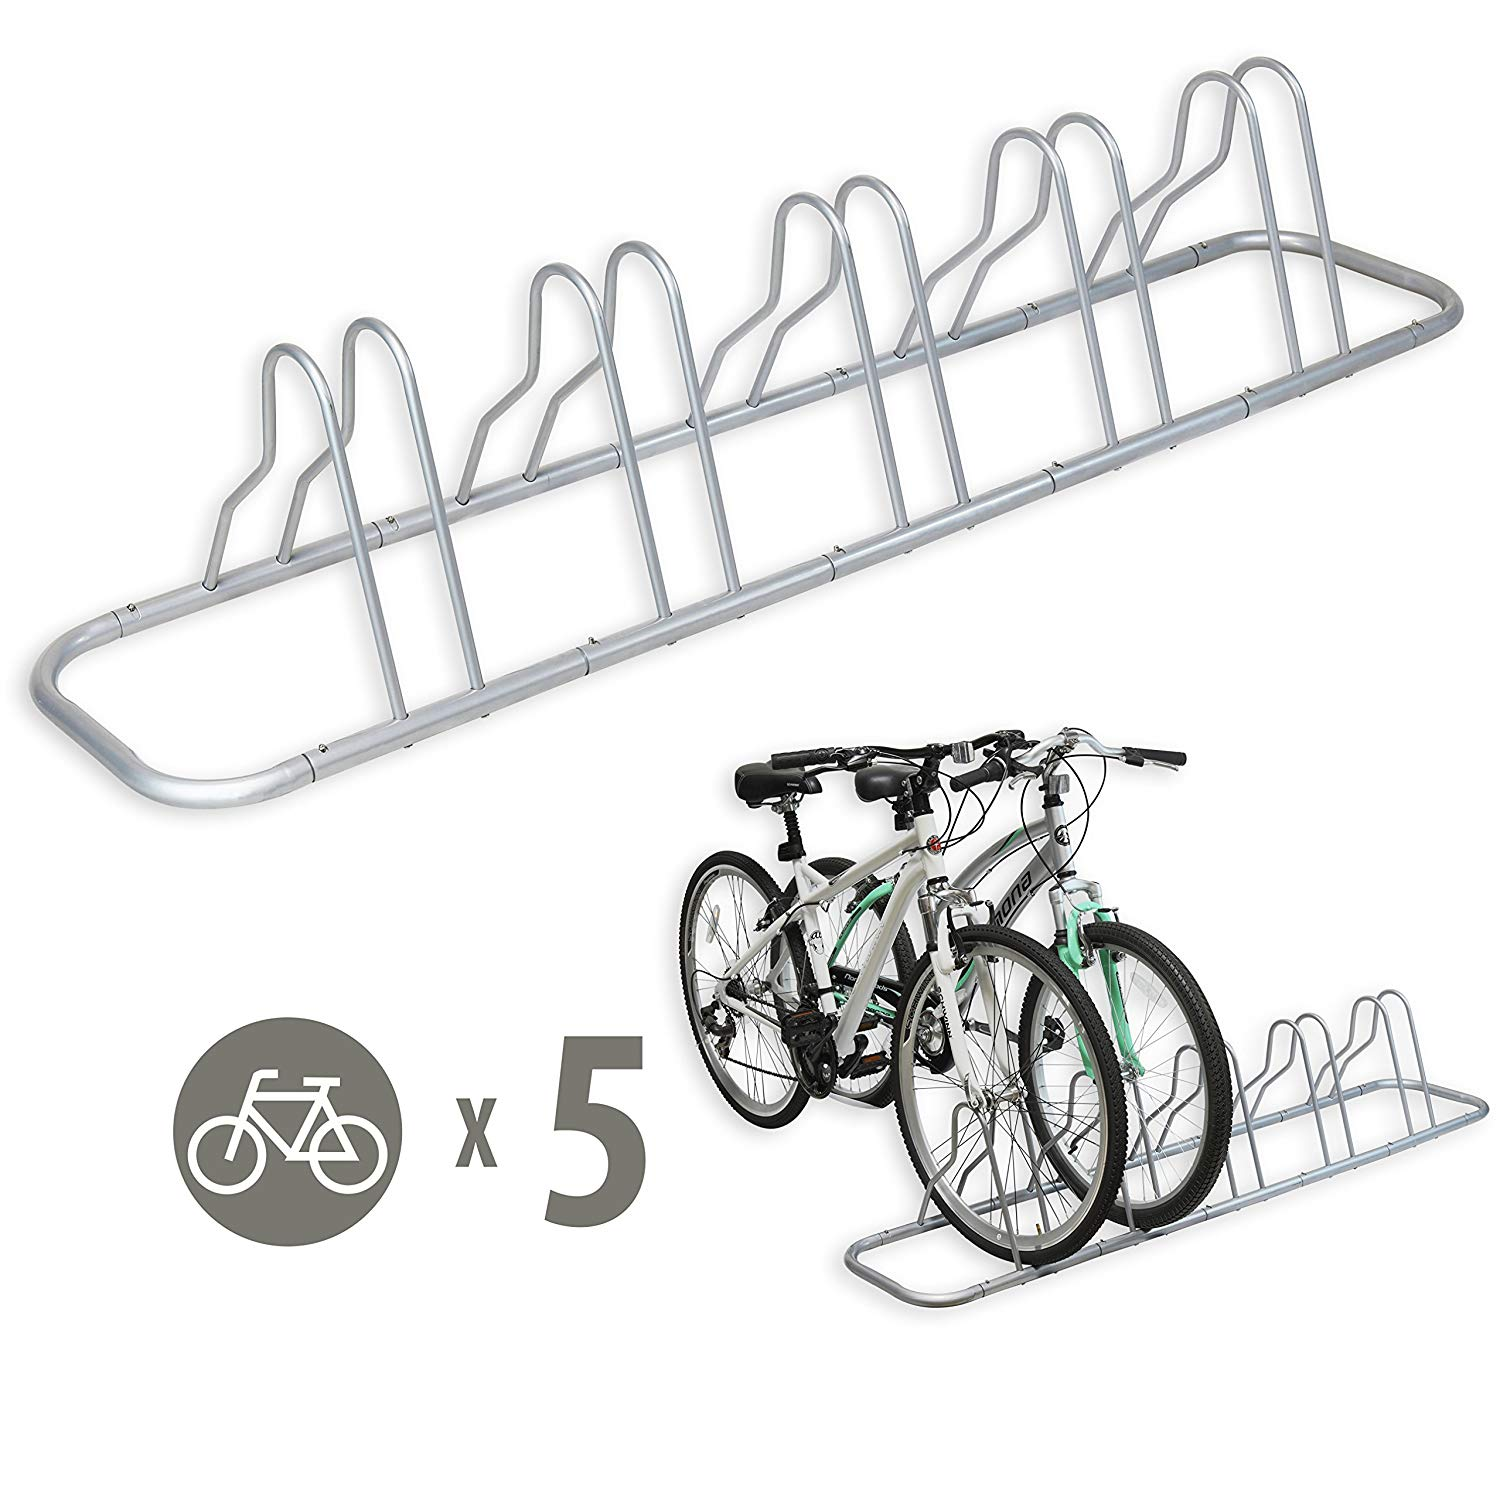 Bicycle clipart cycle parking.